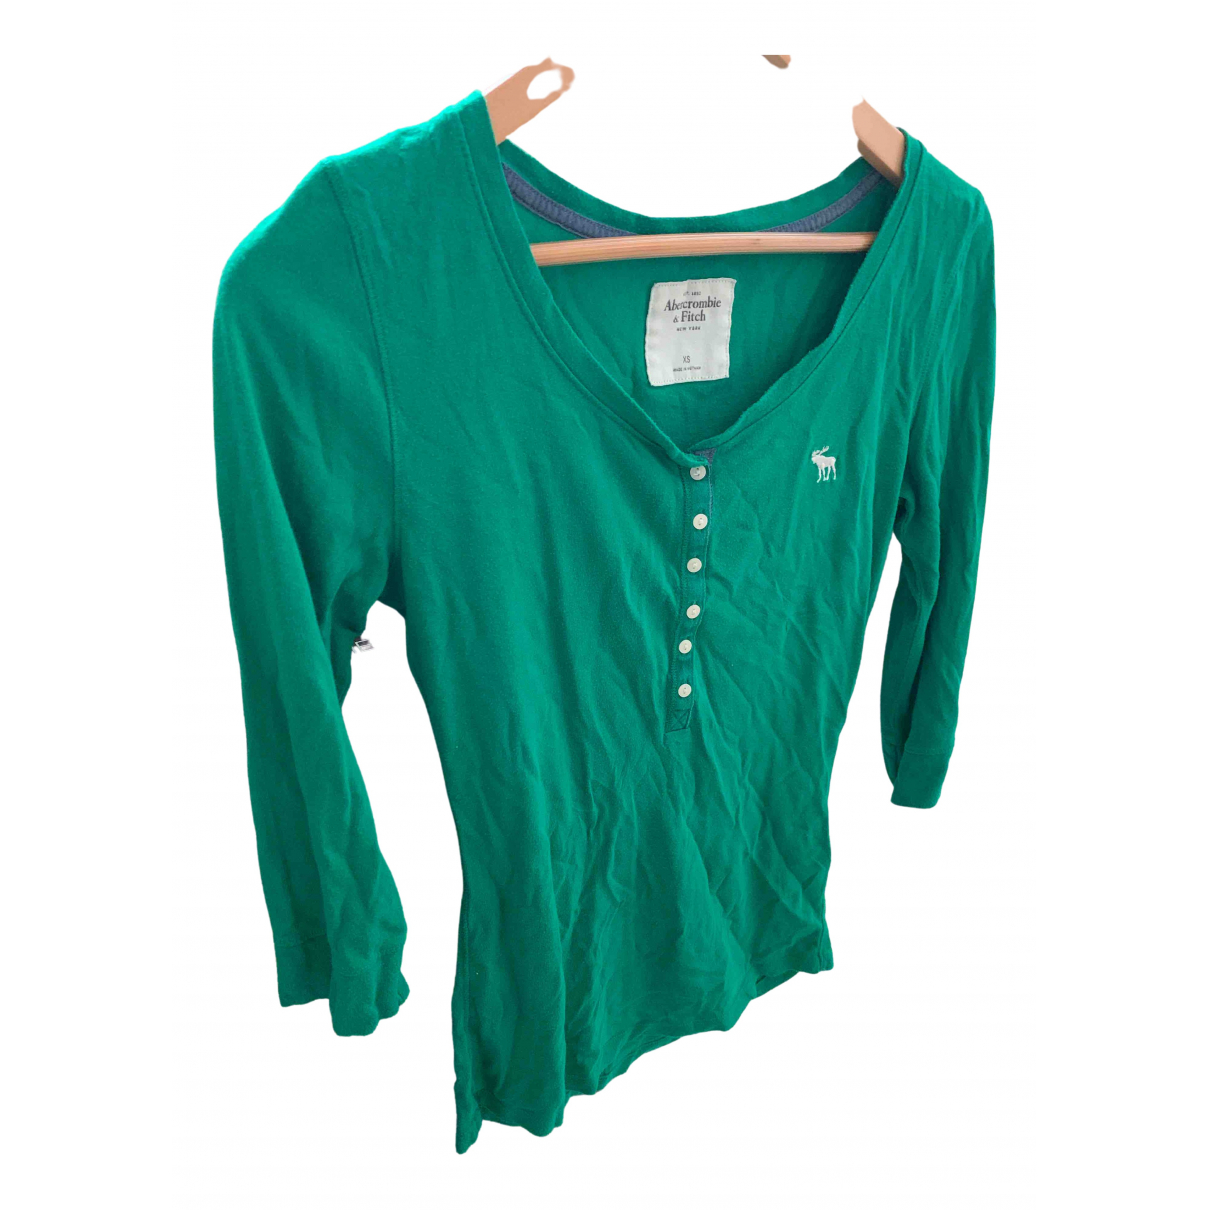 Abercrombie & Fitch \N Green Cotton  top for Women XS International